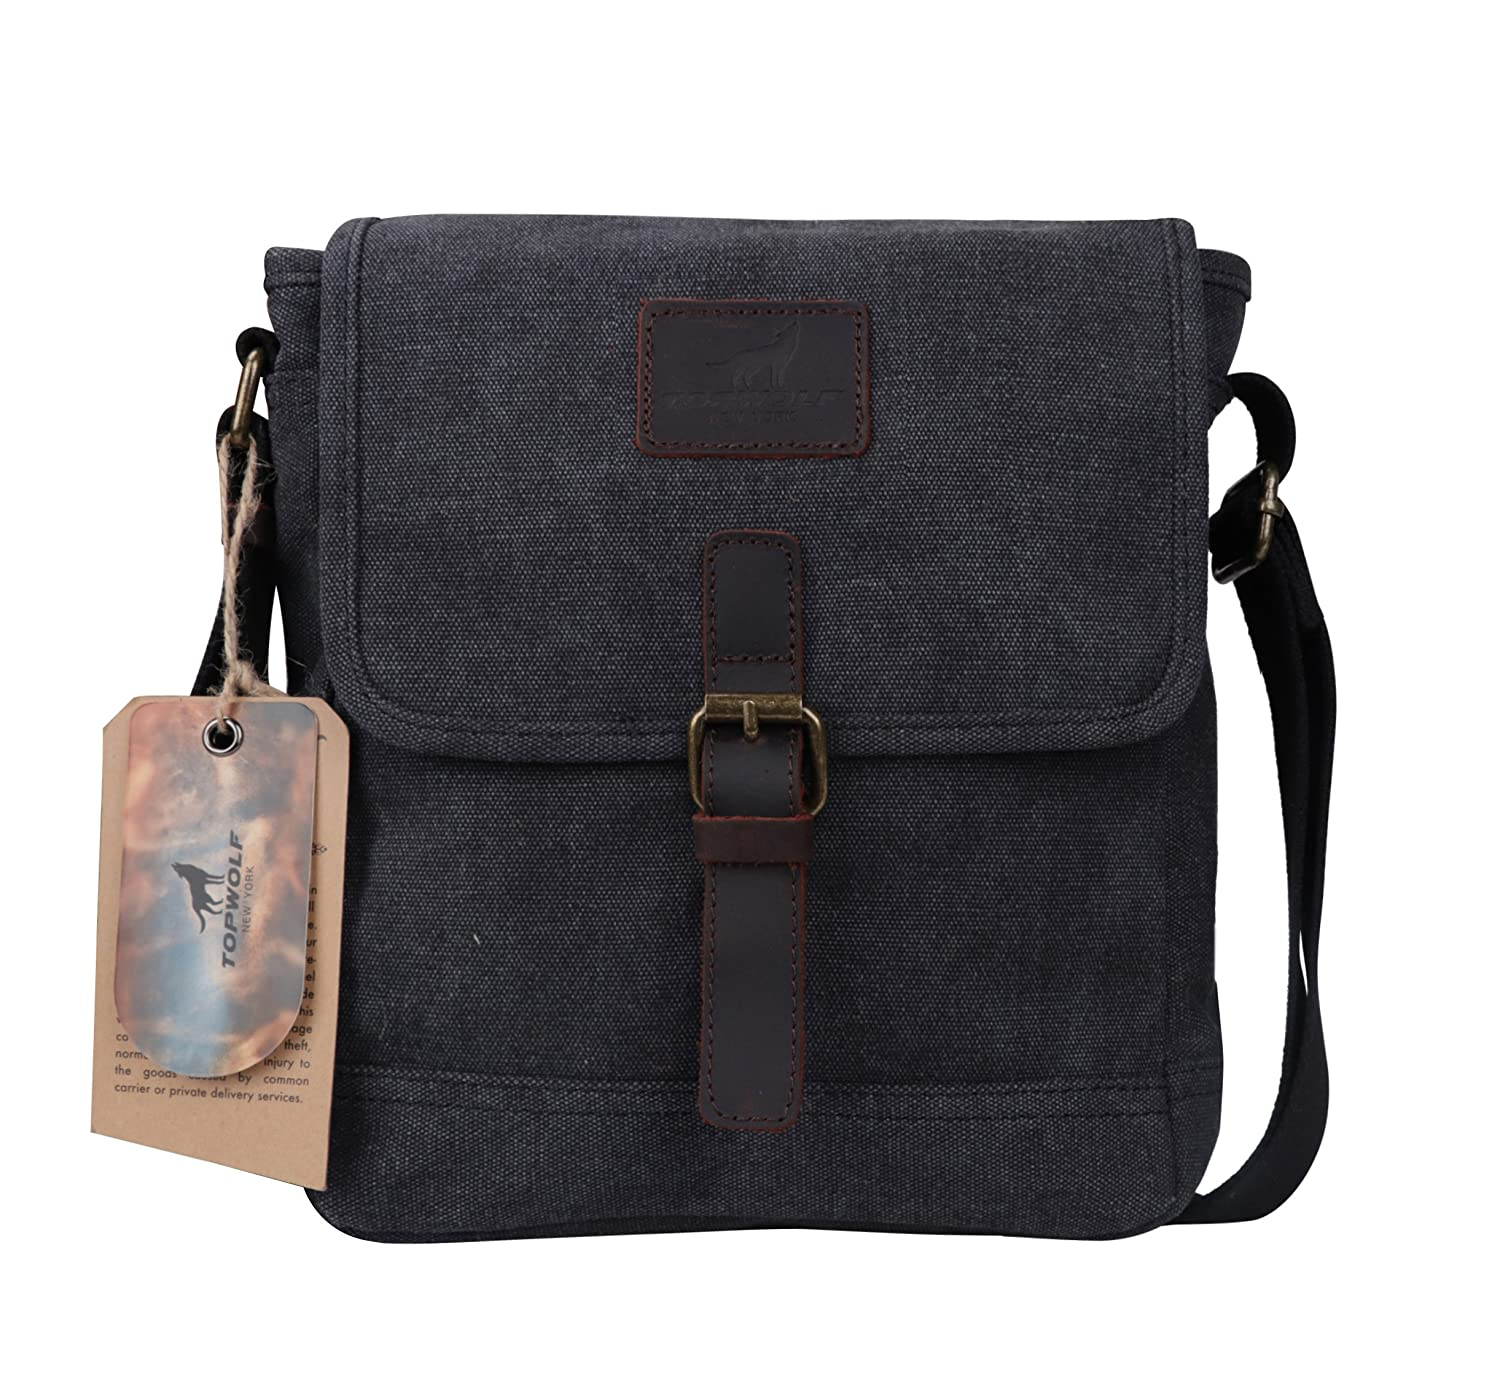 ed0577dc84 ... Easily Hold Phone Handset Key Sunglasses Black. low-cost Canvas  Crossbody Bag TOPWOLF Small Messenger Casual Travel Working Tools Bag  Shoulder Bag